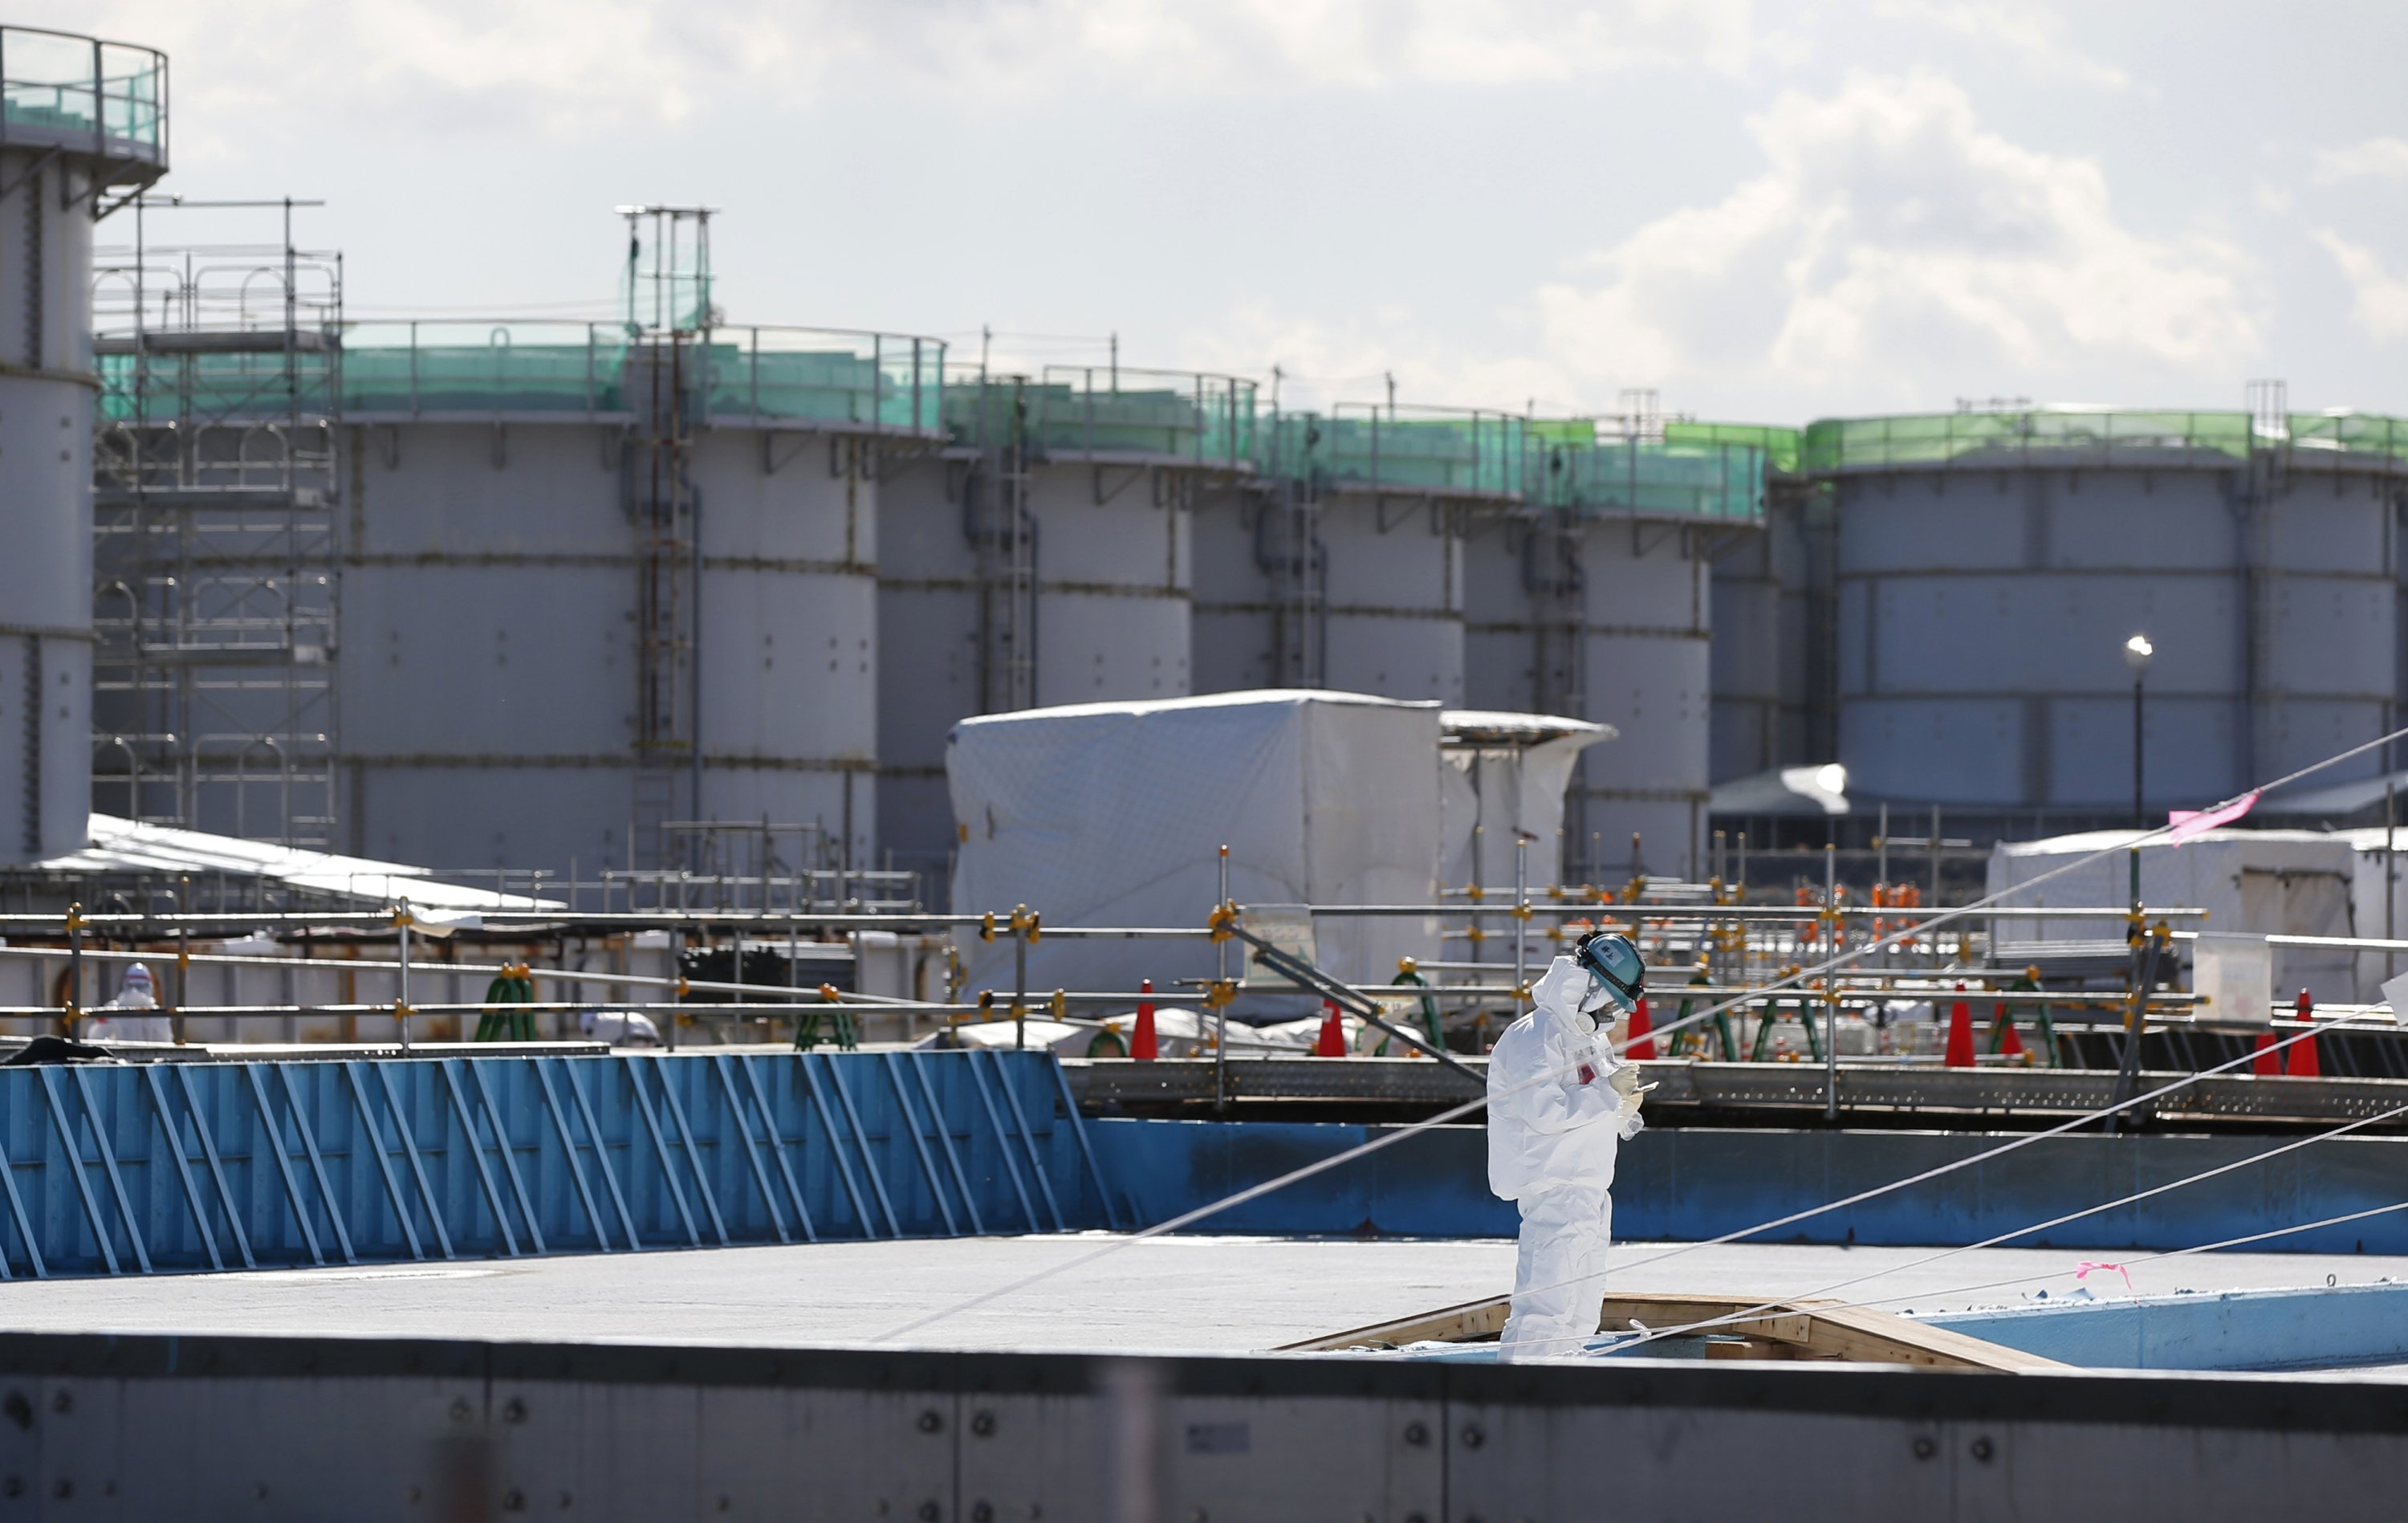 A worker, wearing a protective suit and mask, takes notes in front of storage tanks for radioactive water at the tsunami-crippled Fukushima Daiichi nuclear power plant in Okuma town, Fukushima Prefecture, northeastern Japan, Feb. 16, 2016. (AP)